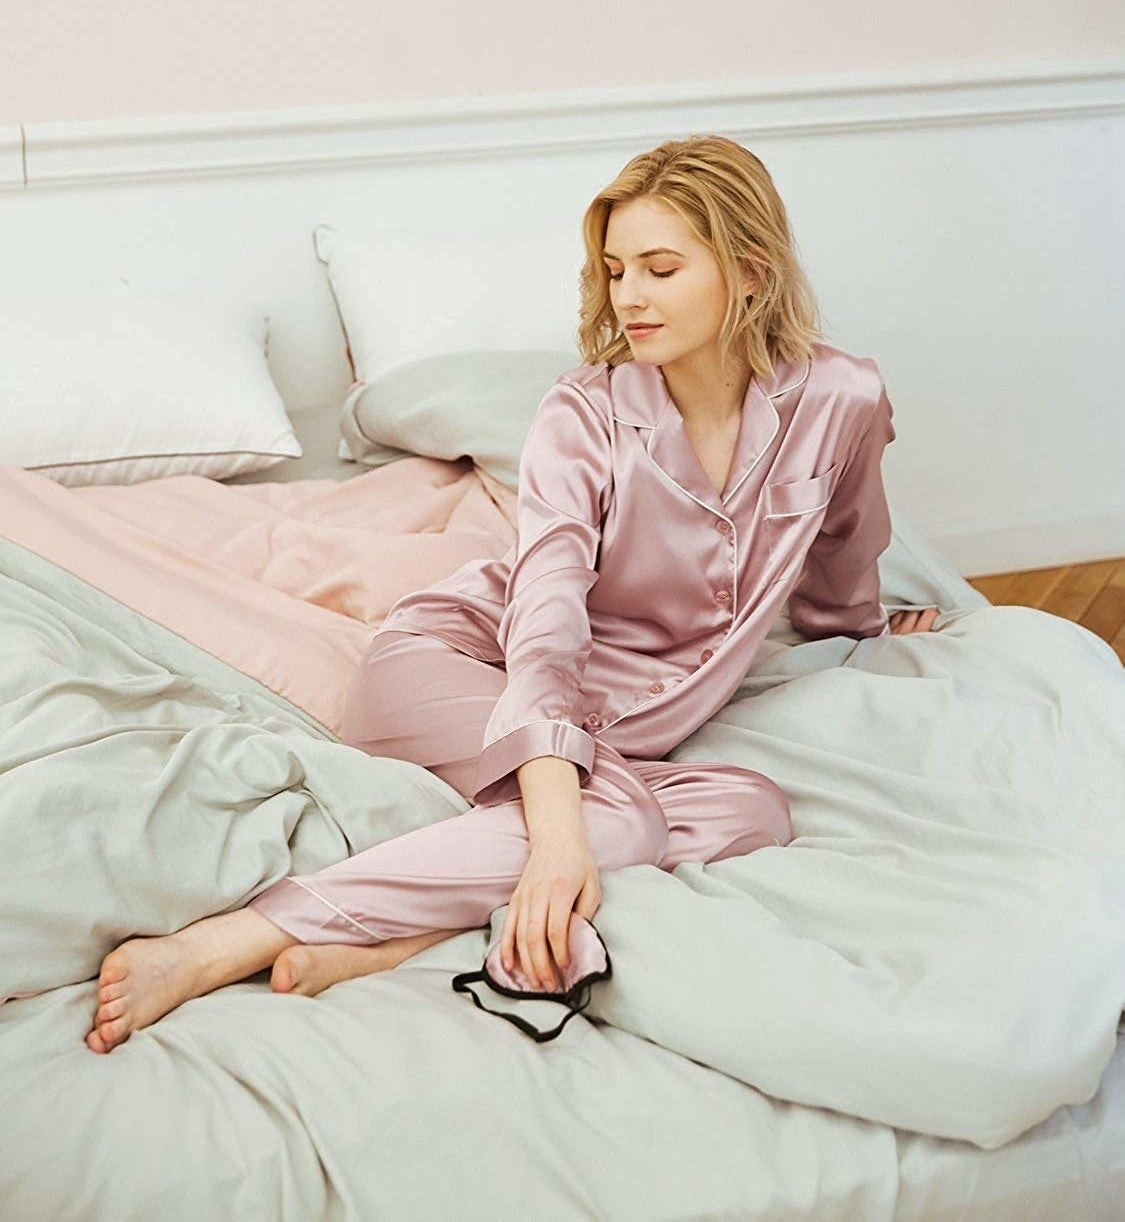 A model wearing the pajama set in bed